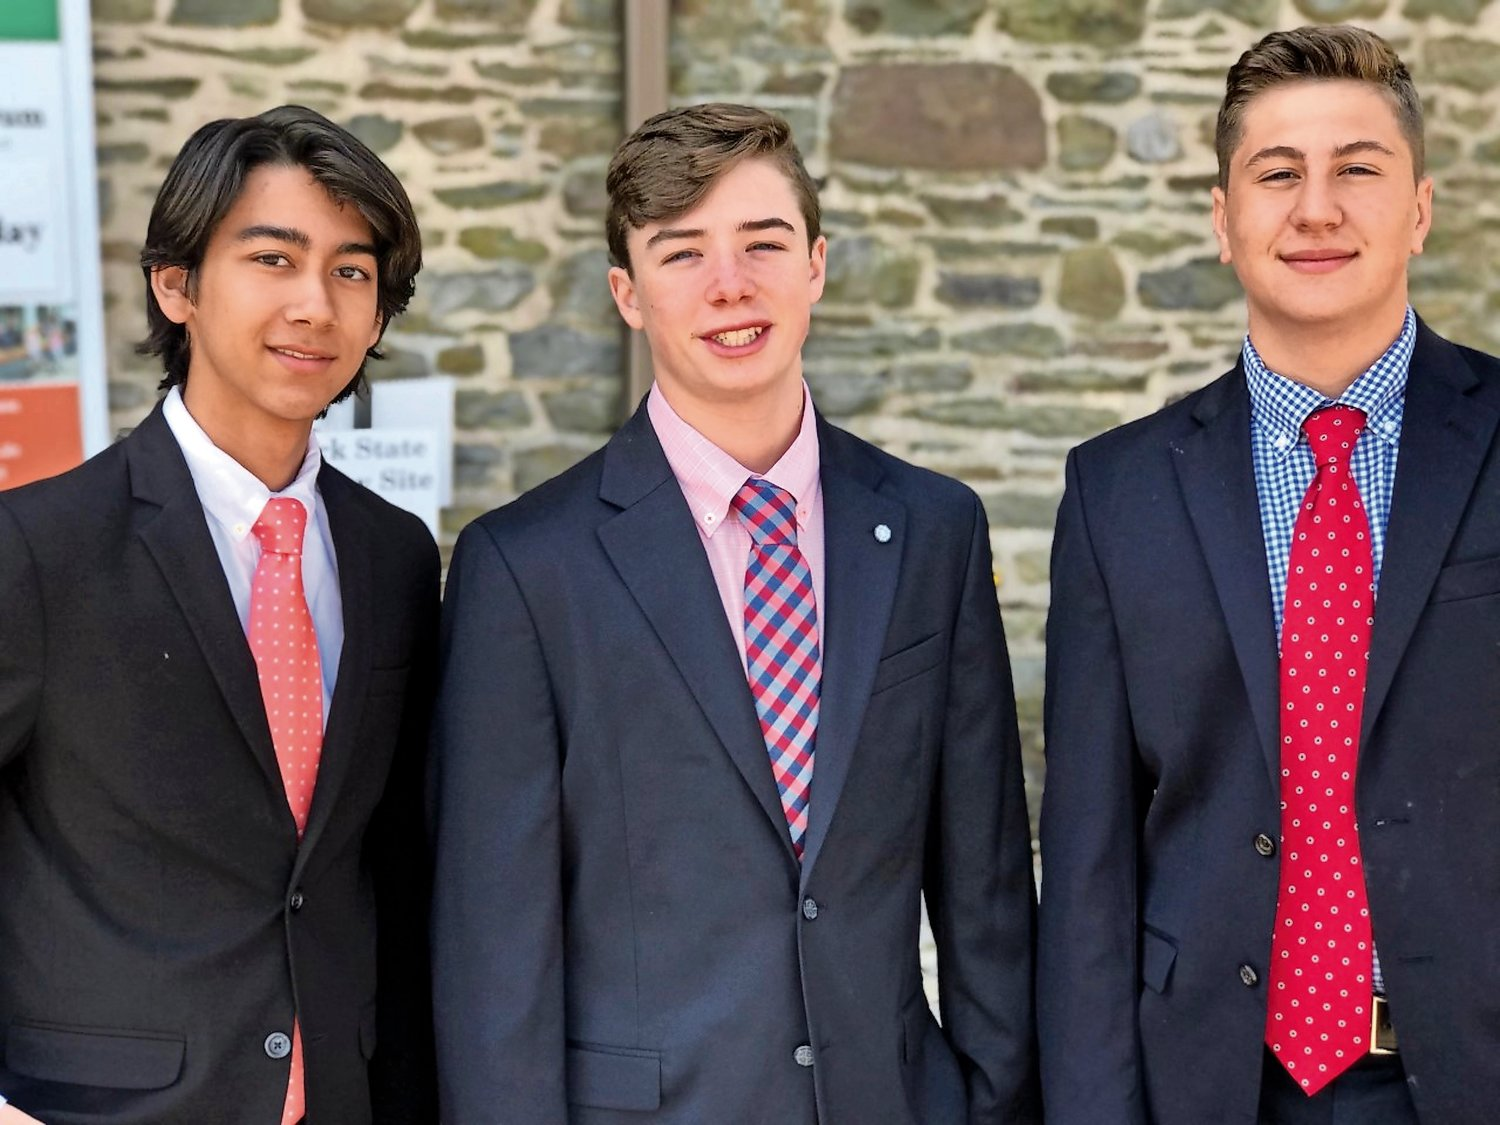 Eight-grade students Christian Holden, Nicholas La Rosa and Michael Granelli will advance to the National History Day competition in College Park, Md., next month.